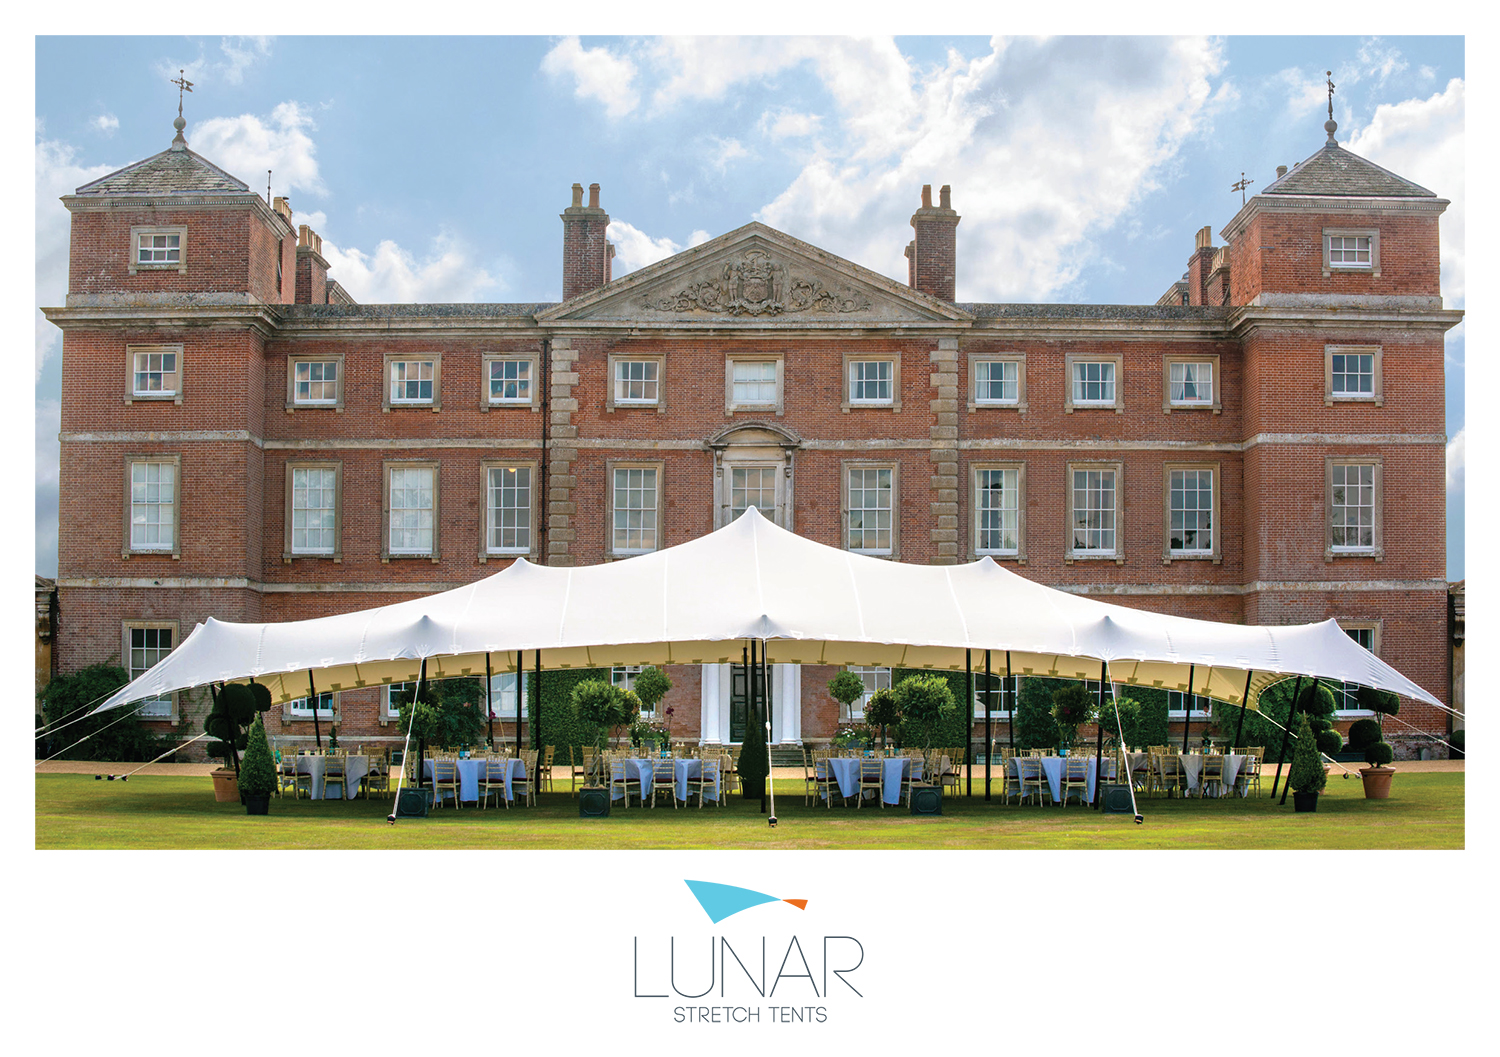 stretch tents, norwich, lunar, branding, brochure design